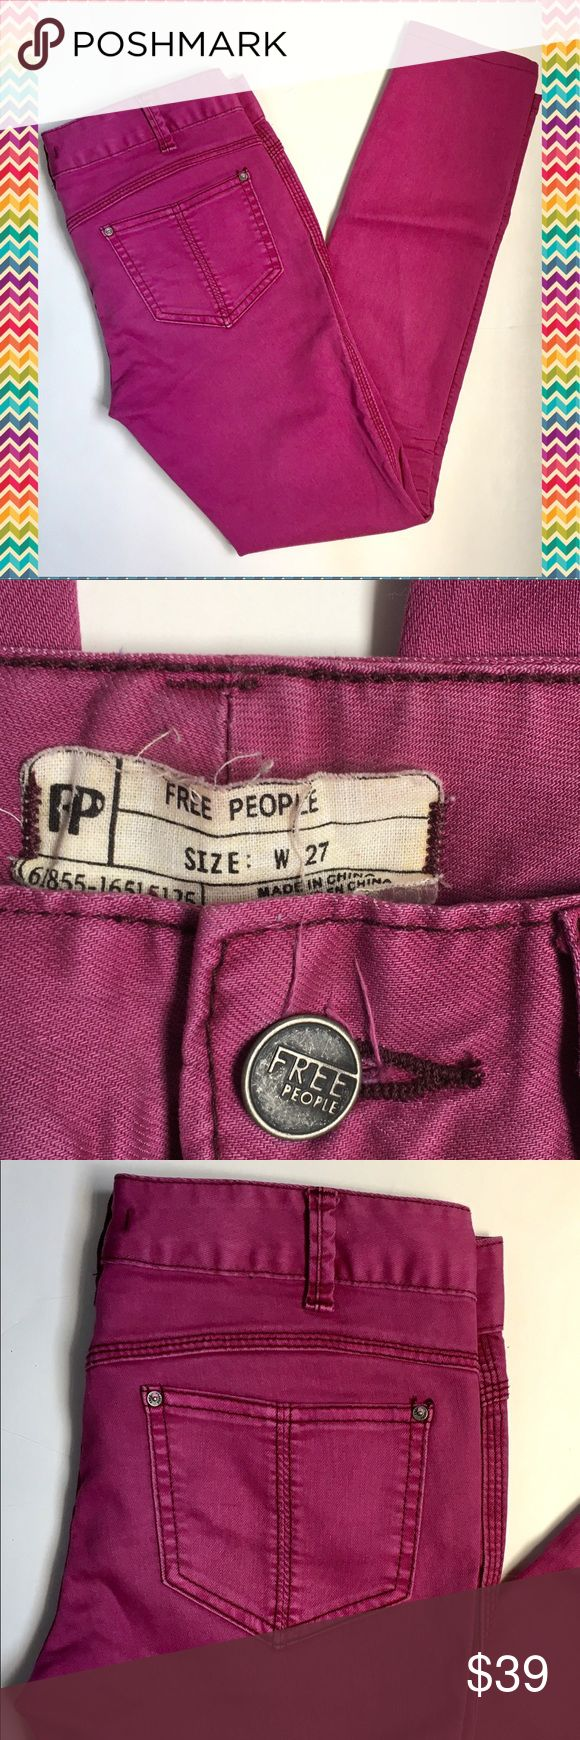 FREE PEOPLE Purple Skinny Pants Gorgeous purple color! 5 pocket style with skinny legs. Cotton blend fabric is very soft. Great condition! Free People Pants Skinny